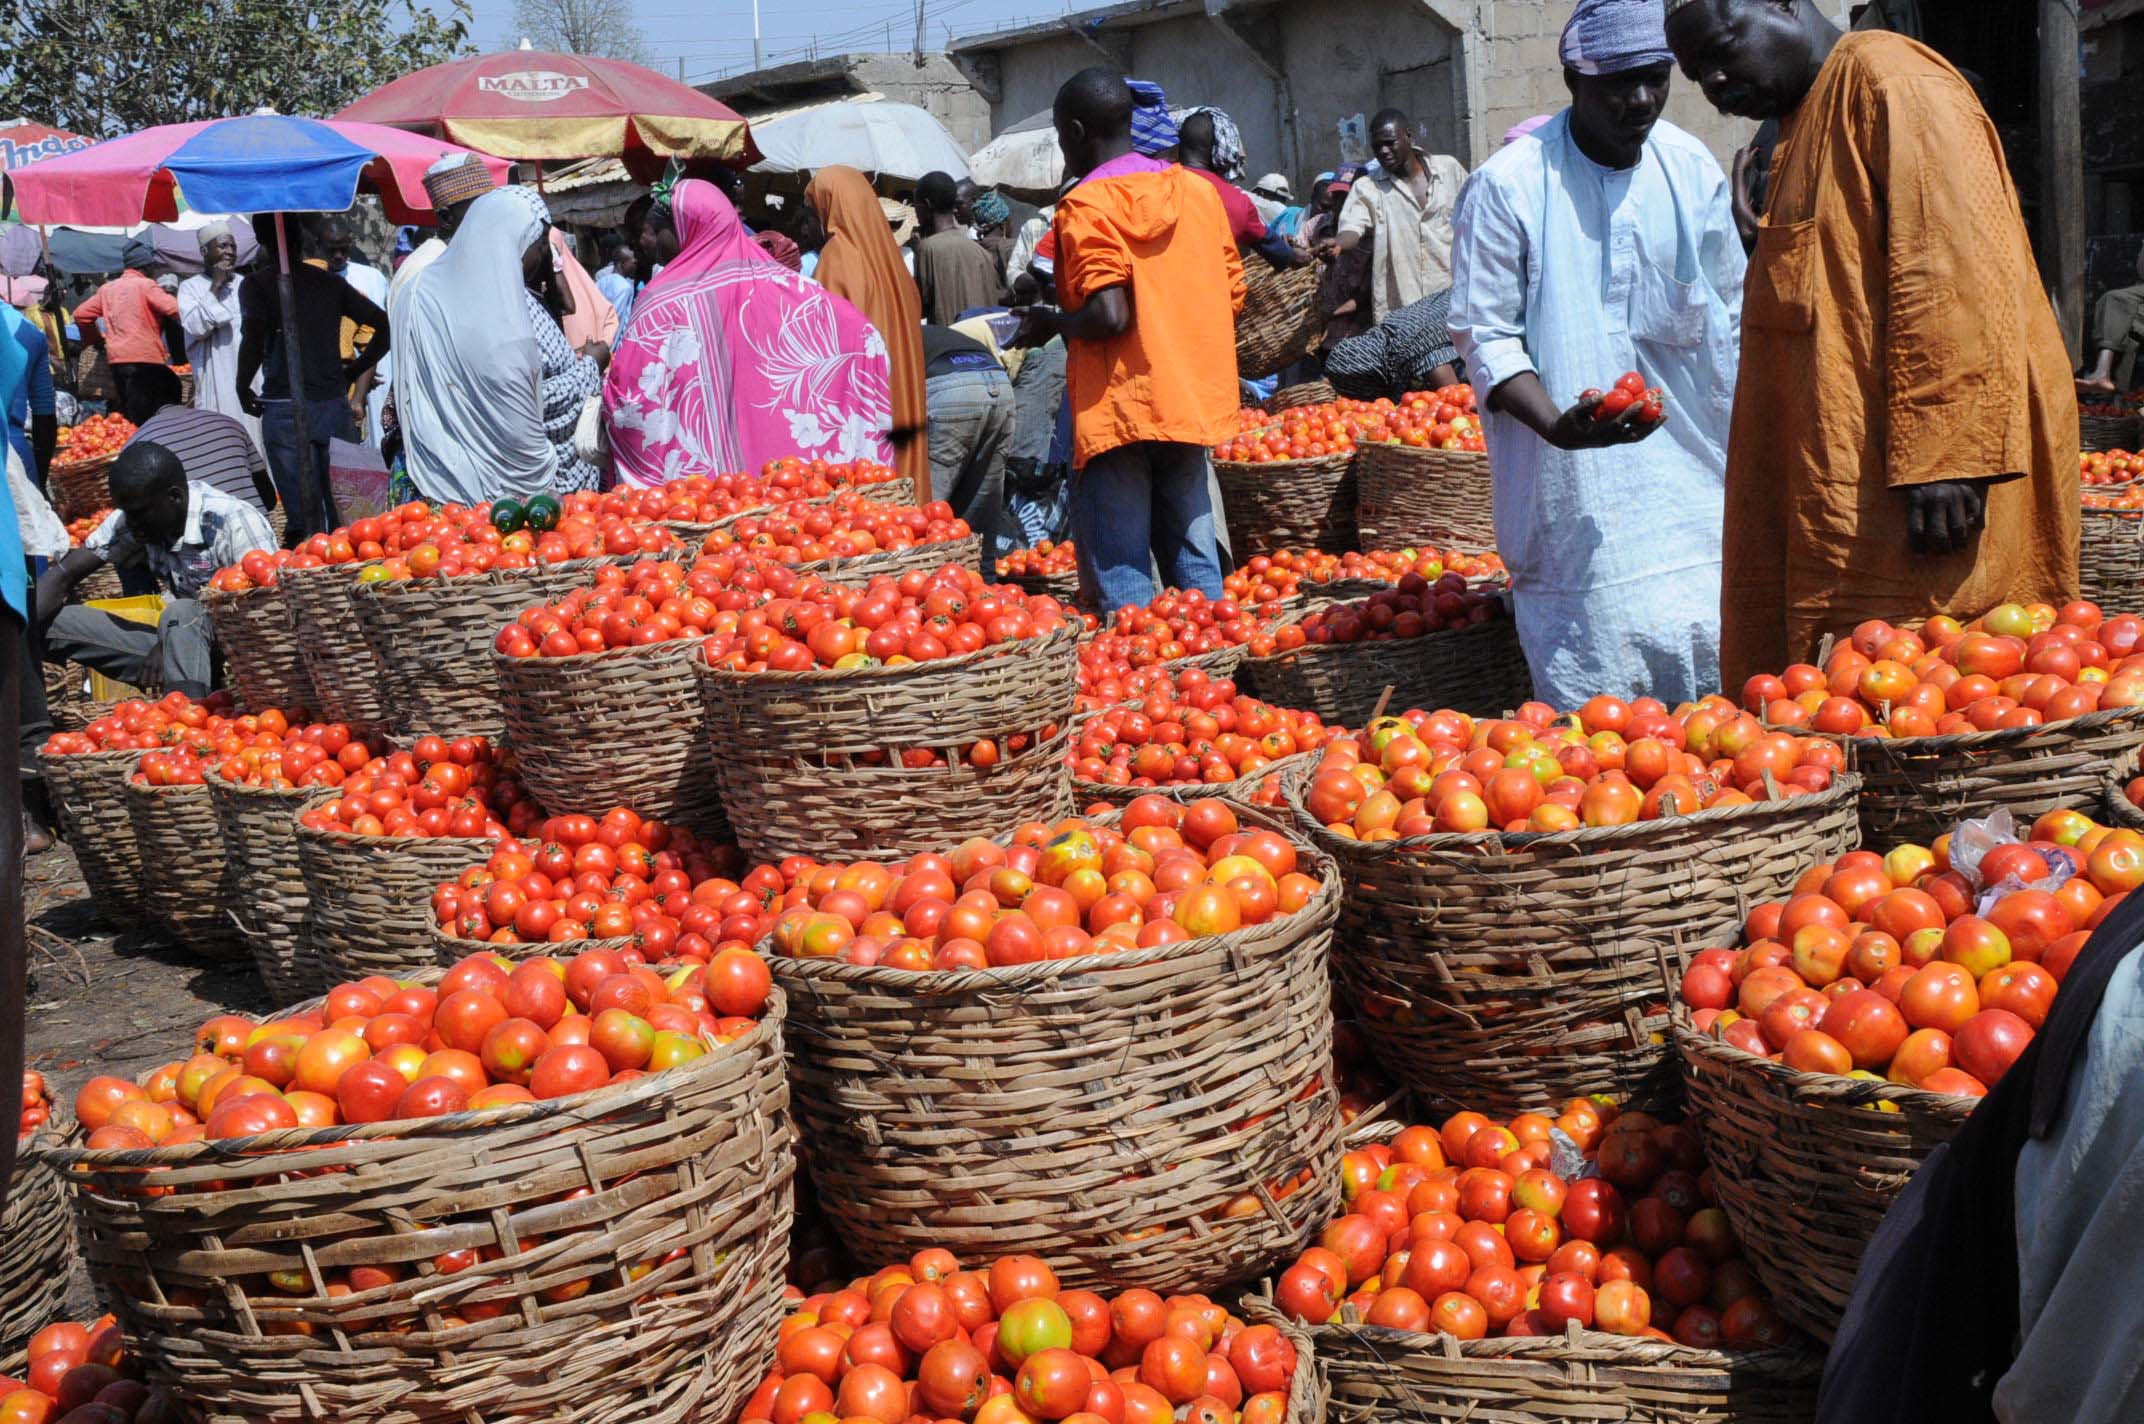 Tomatoes on display in a Nigerian Market / Photo via agricnation.com